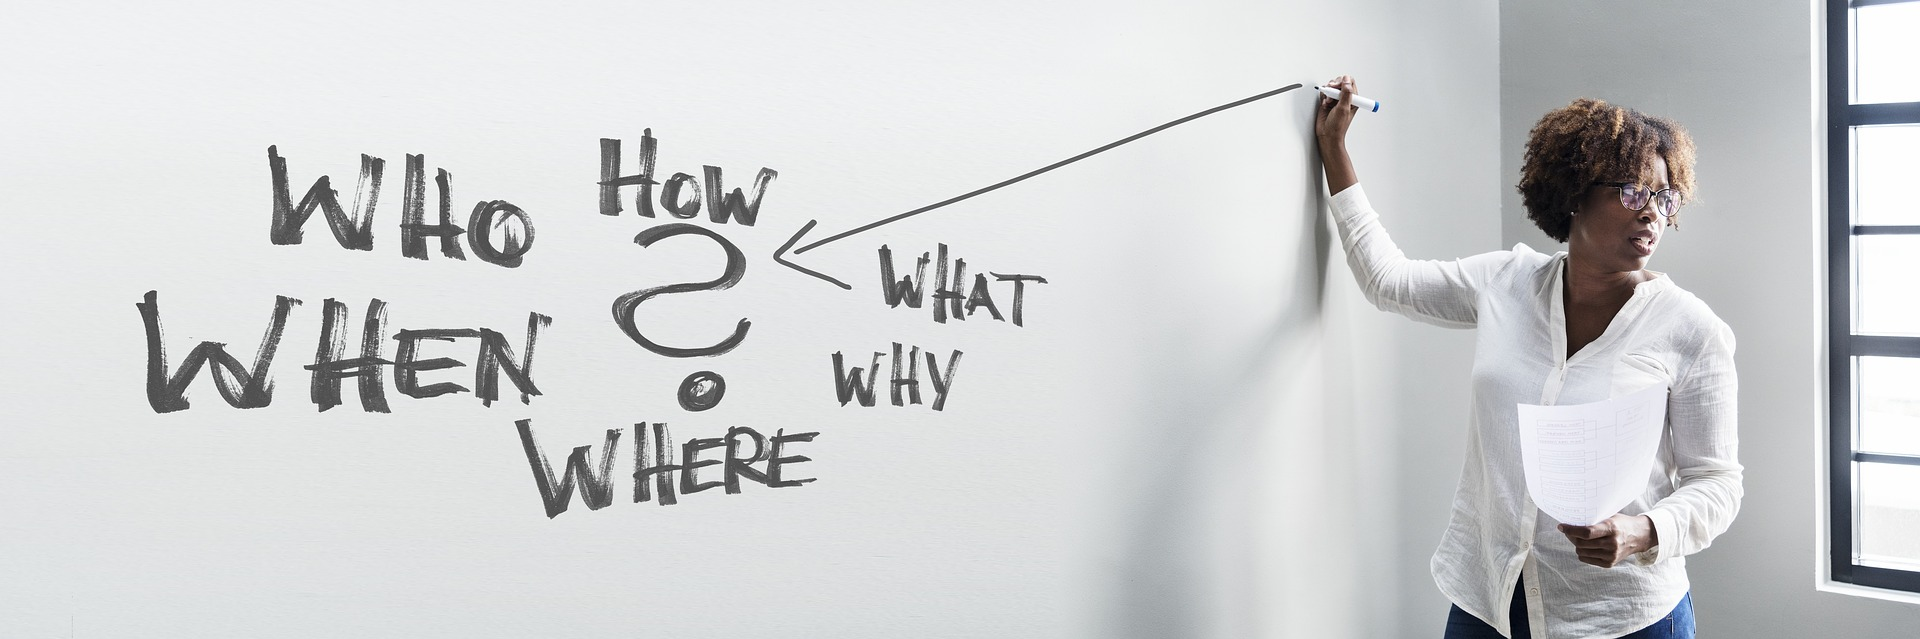 A woman drawing on a white board wall. She has drawn a question mark surrounded by the words Who, when, where, what, why, and how.